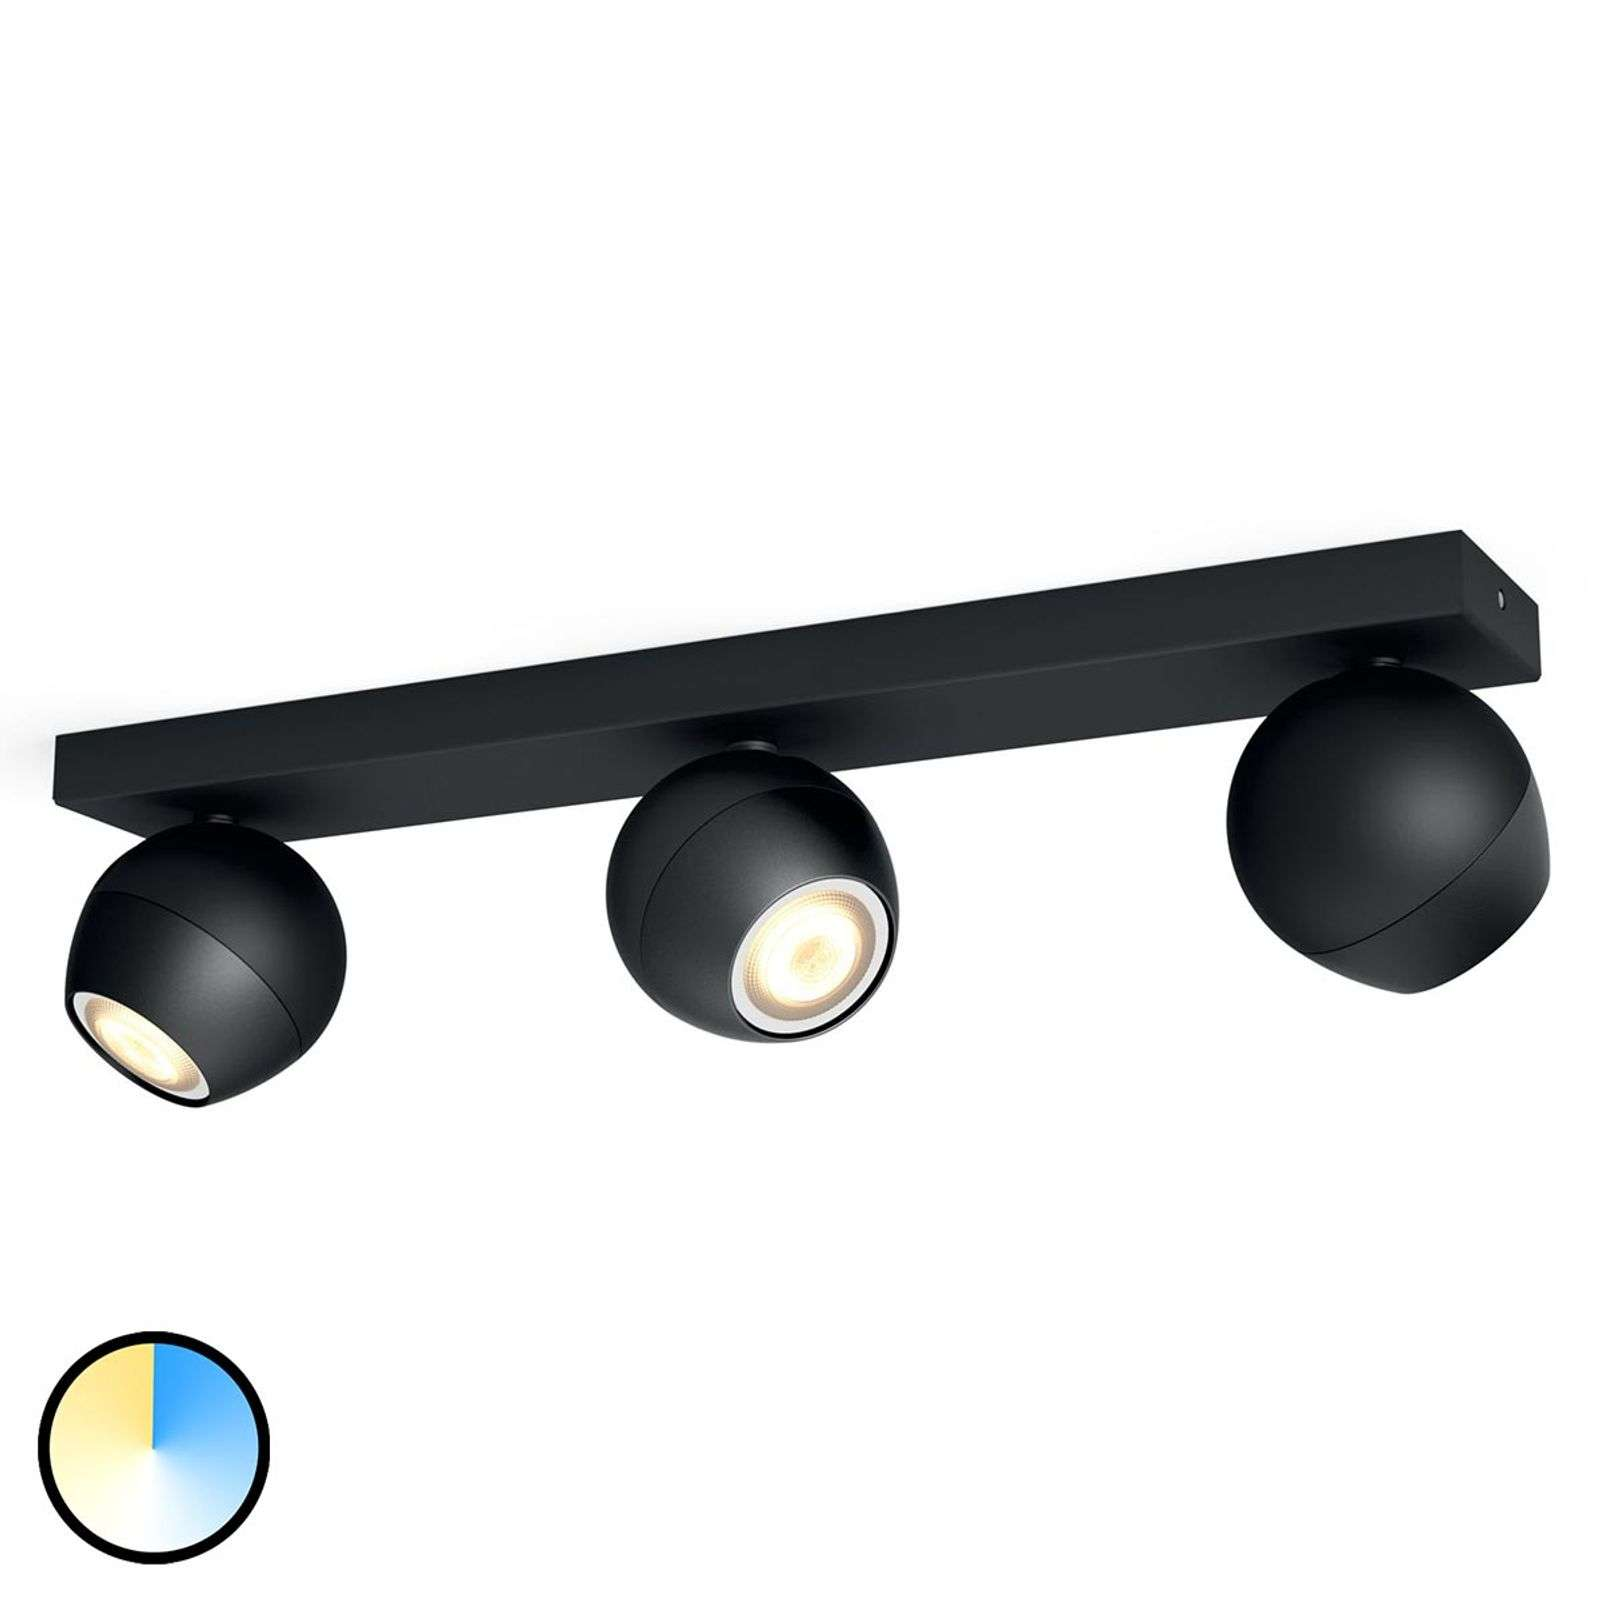 Buckram - Philips Hue LED spot 3 lampen in zwart